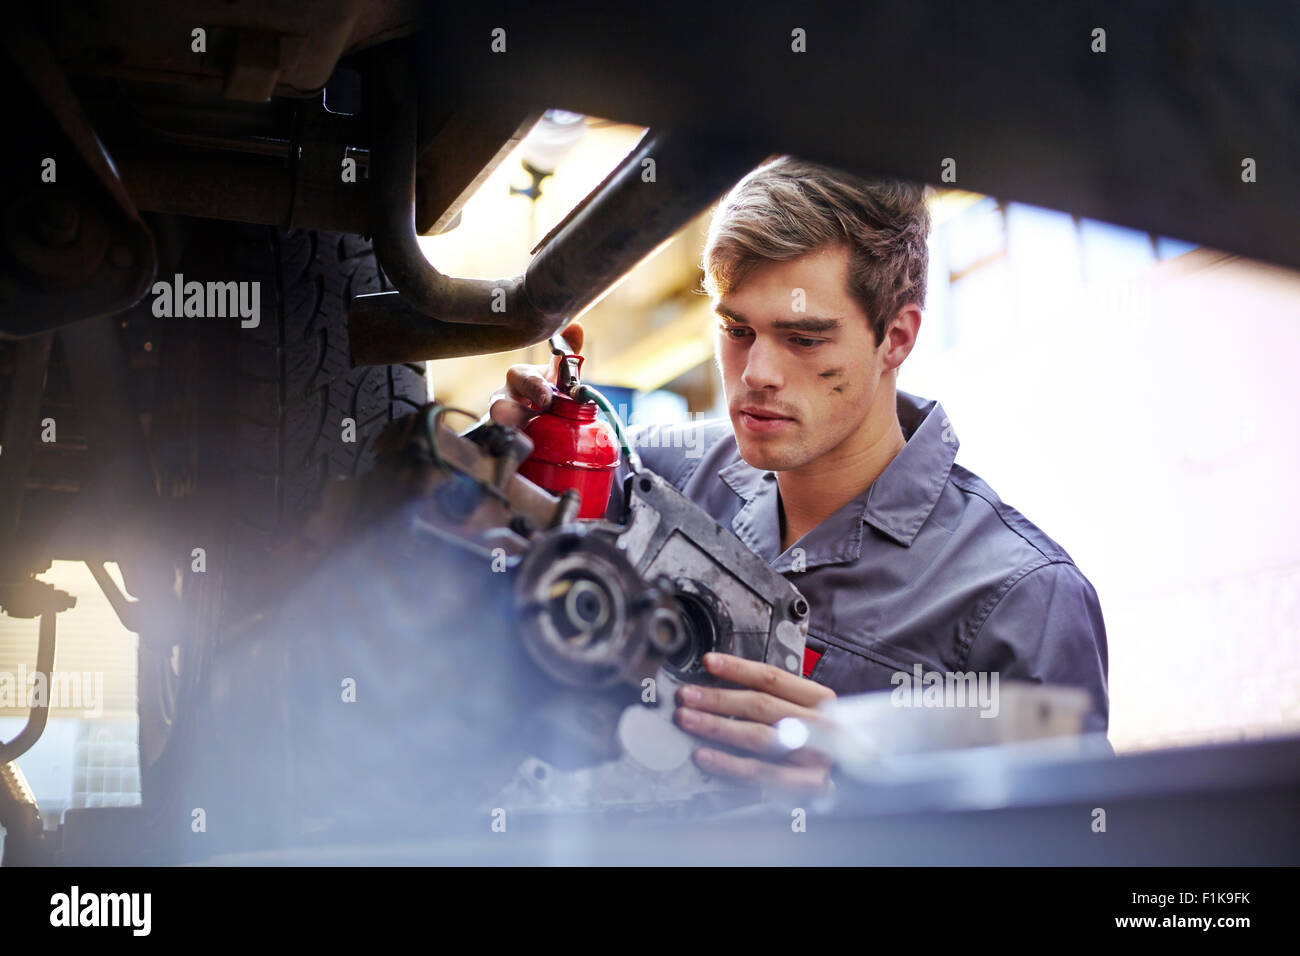 Mechanic oiling part in auto repair shop - Stock Image